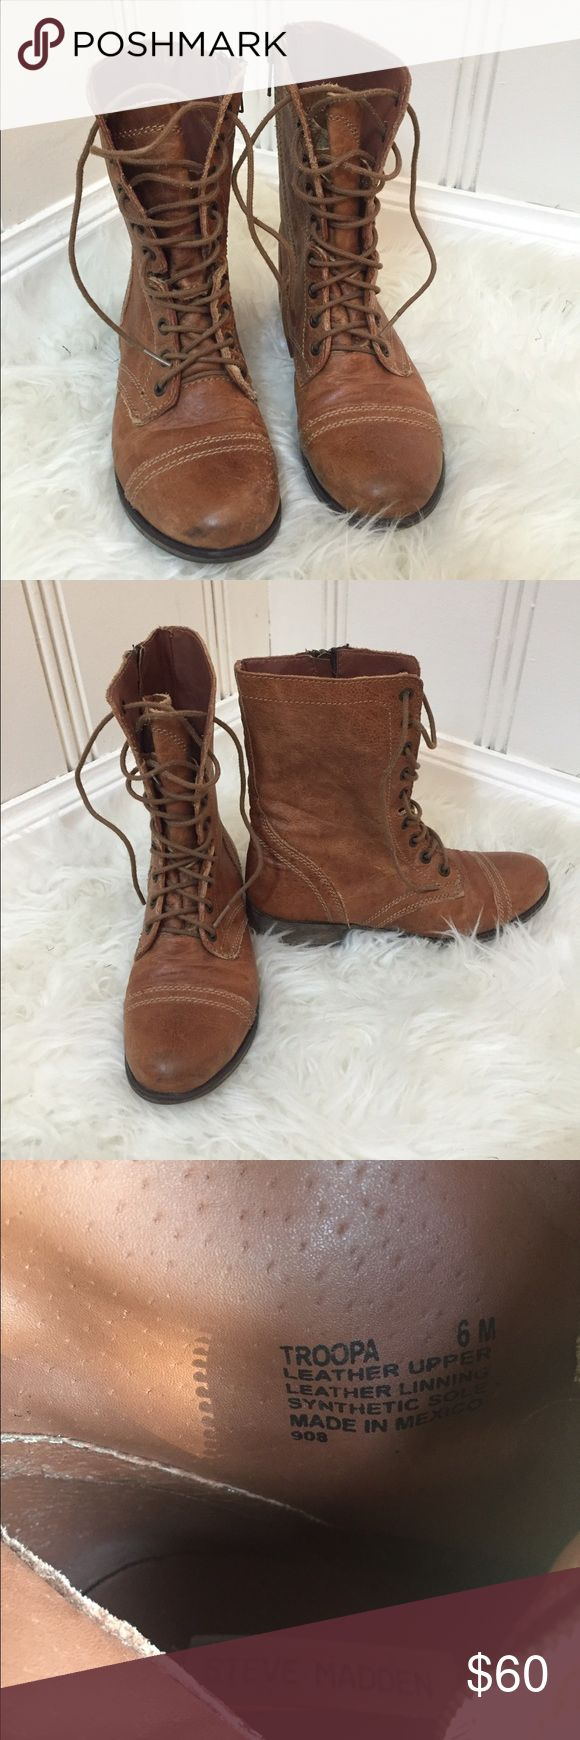 Steve Madden Troopa Combat Boots Distressed brown leather combat boots. Awesome for fall 2016 (combat boots are in trend this fall). Comfortable, EUC. Open to offers 💕.     🚫 No Trades  👍🏼 Open to offers & bundles  ✈️ Always shipped quickly after ordered 💕 EUC (always 💖) Steve Madden Shoes Combat & Moto Boots